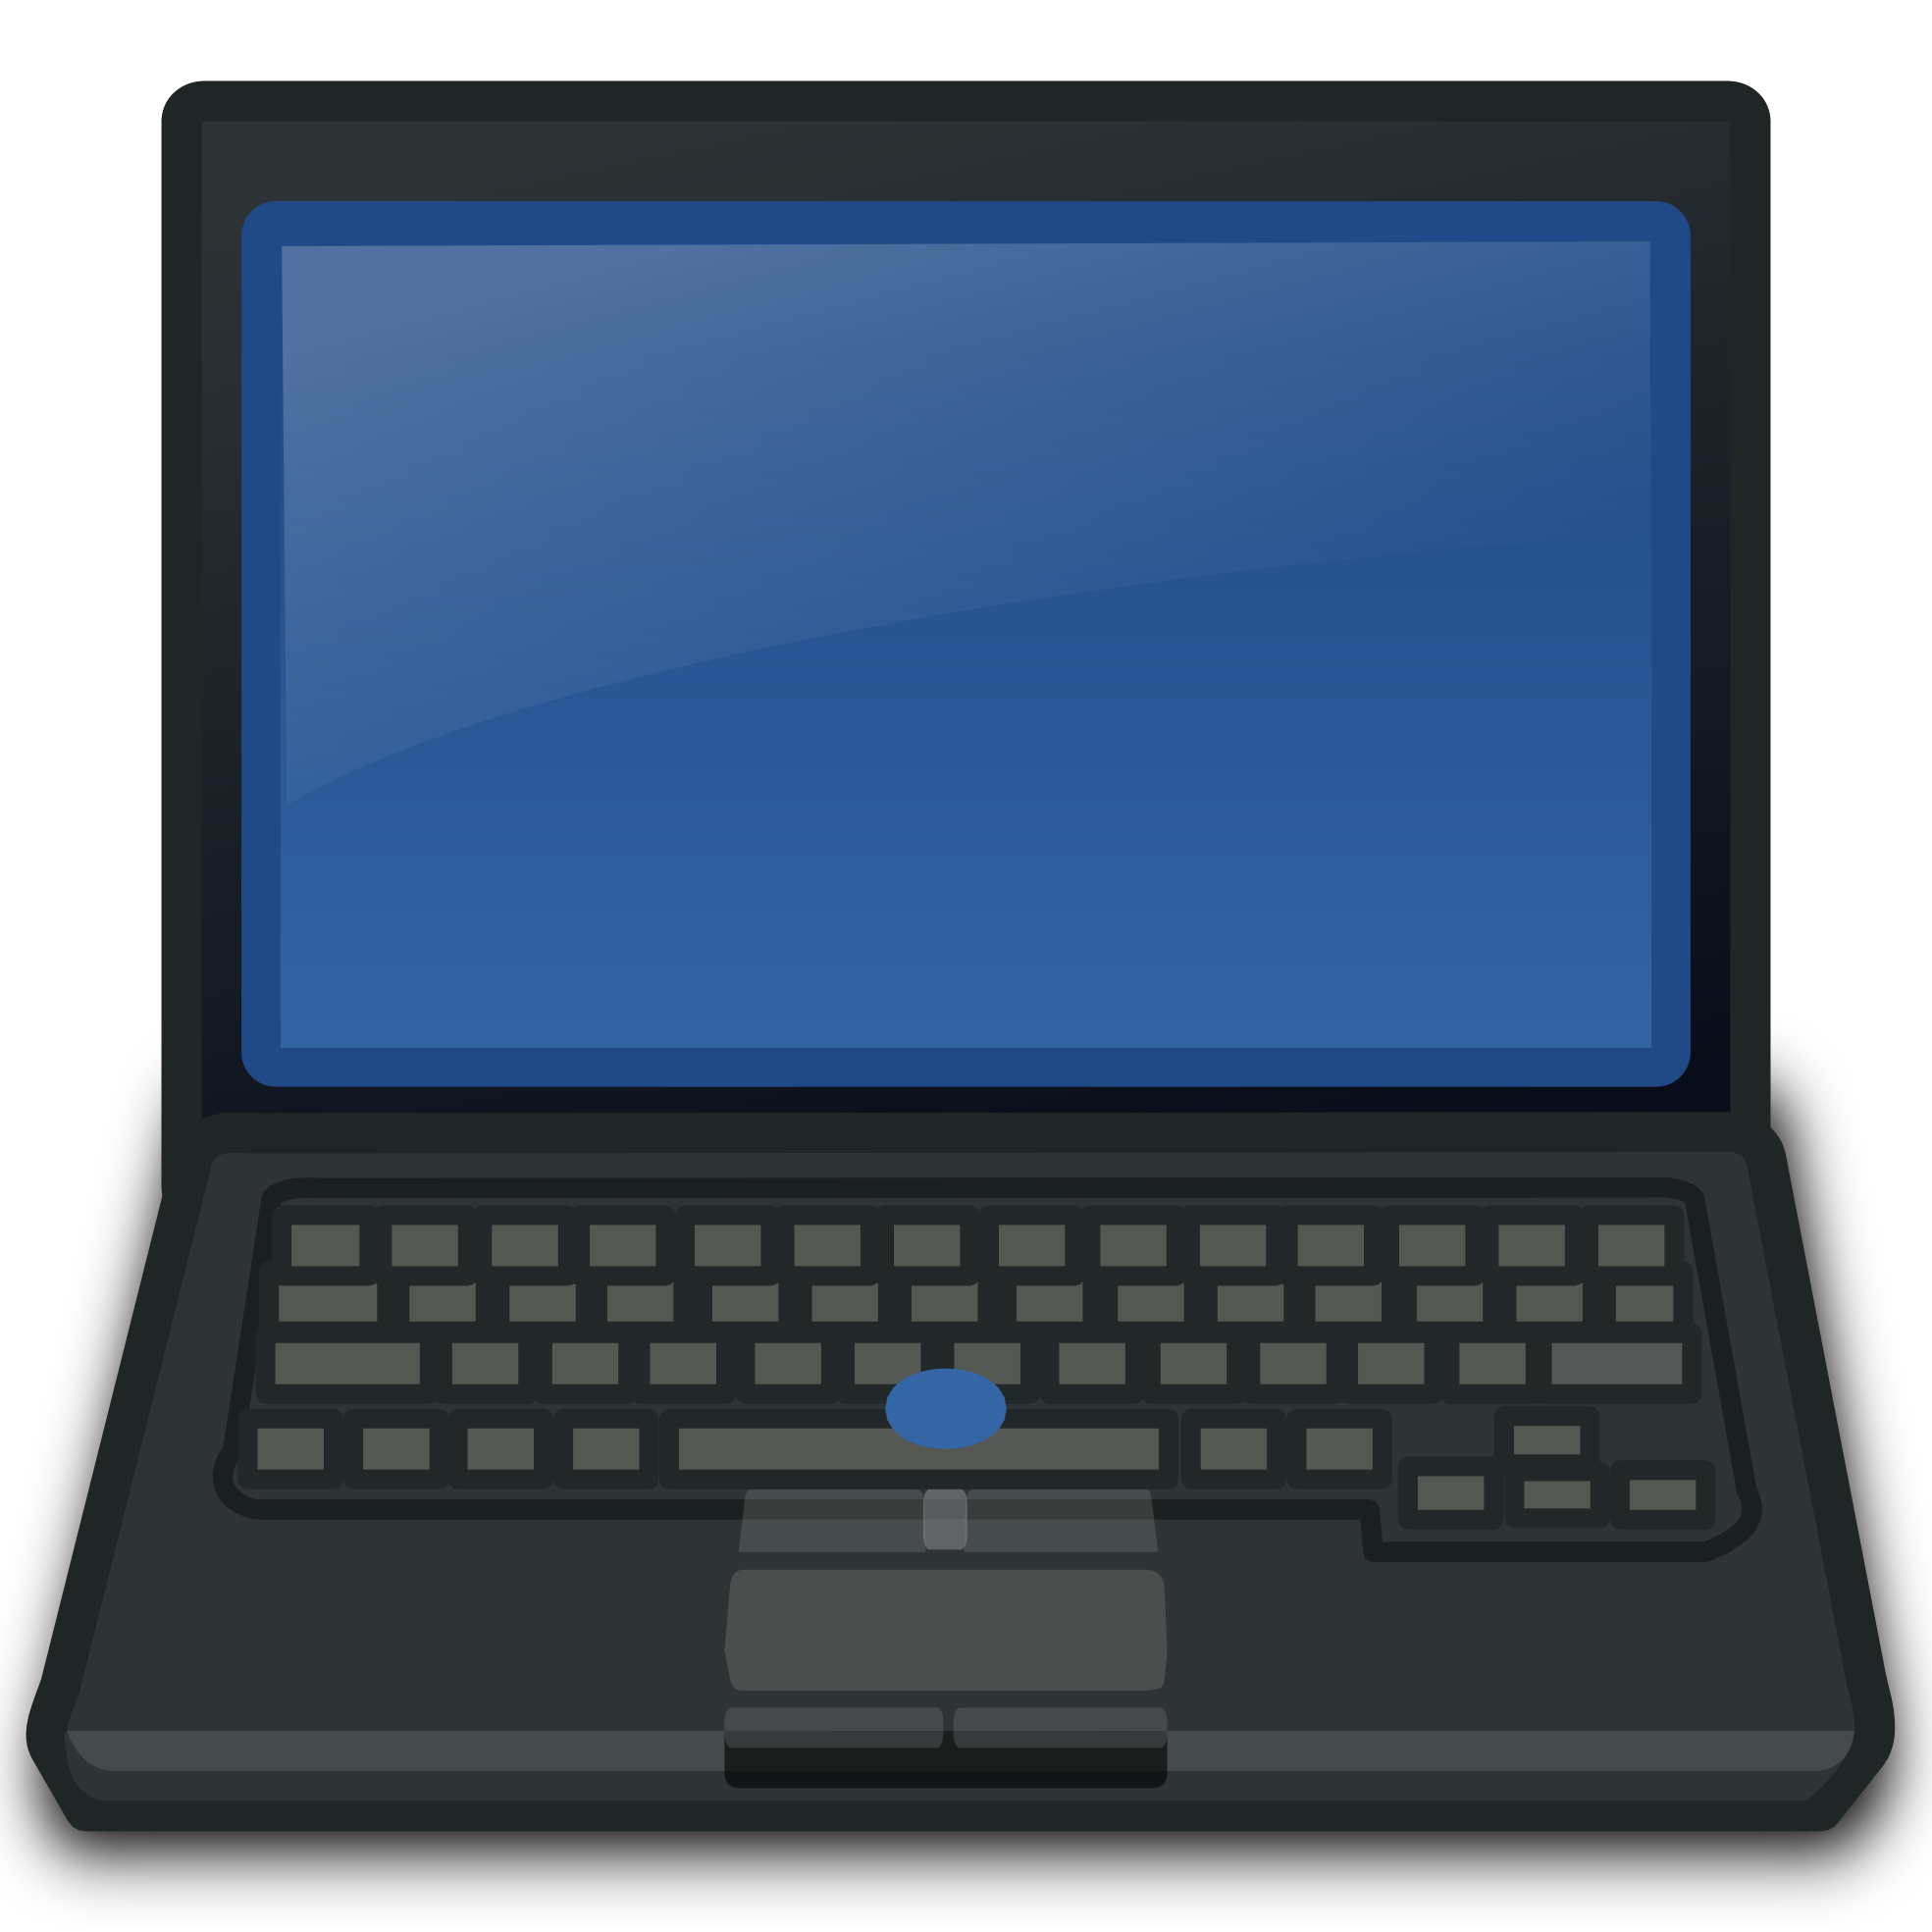 Computer save clipart translucent image royalty free stock Laptop Pictures And Images | Free Download Clip Art | Free Clip ... image royalty free stock